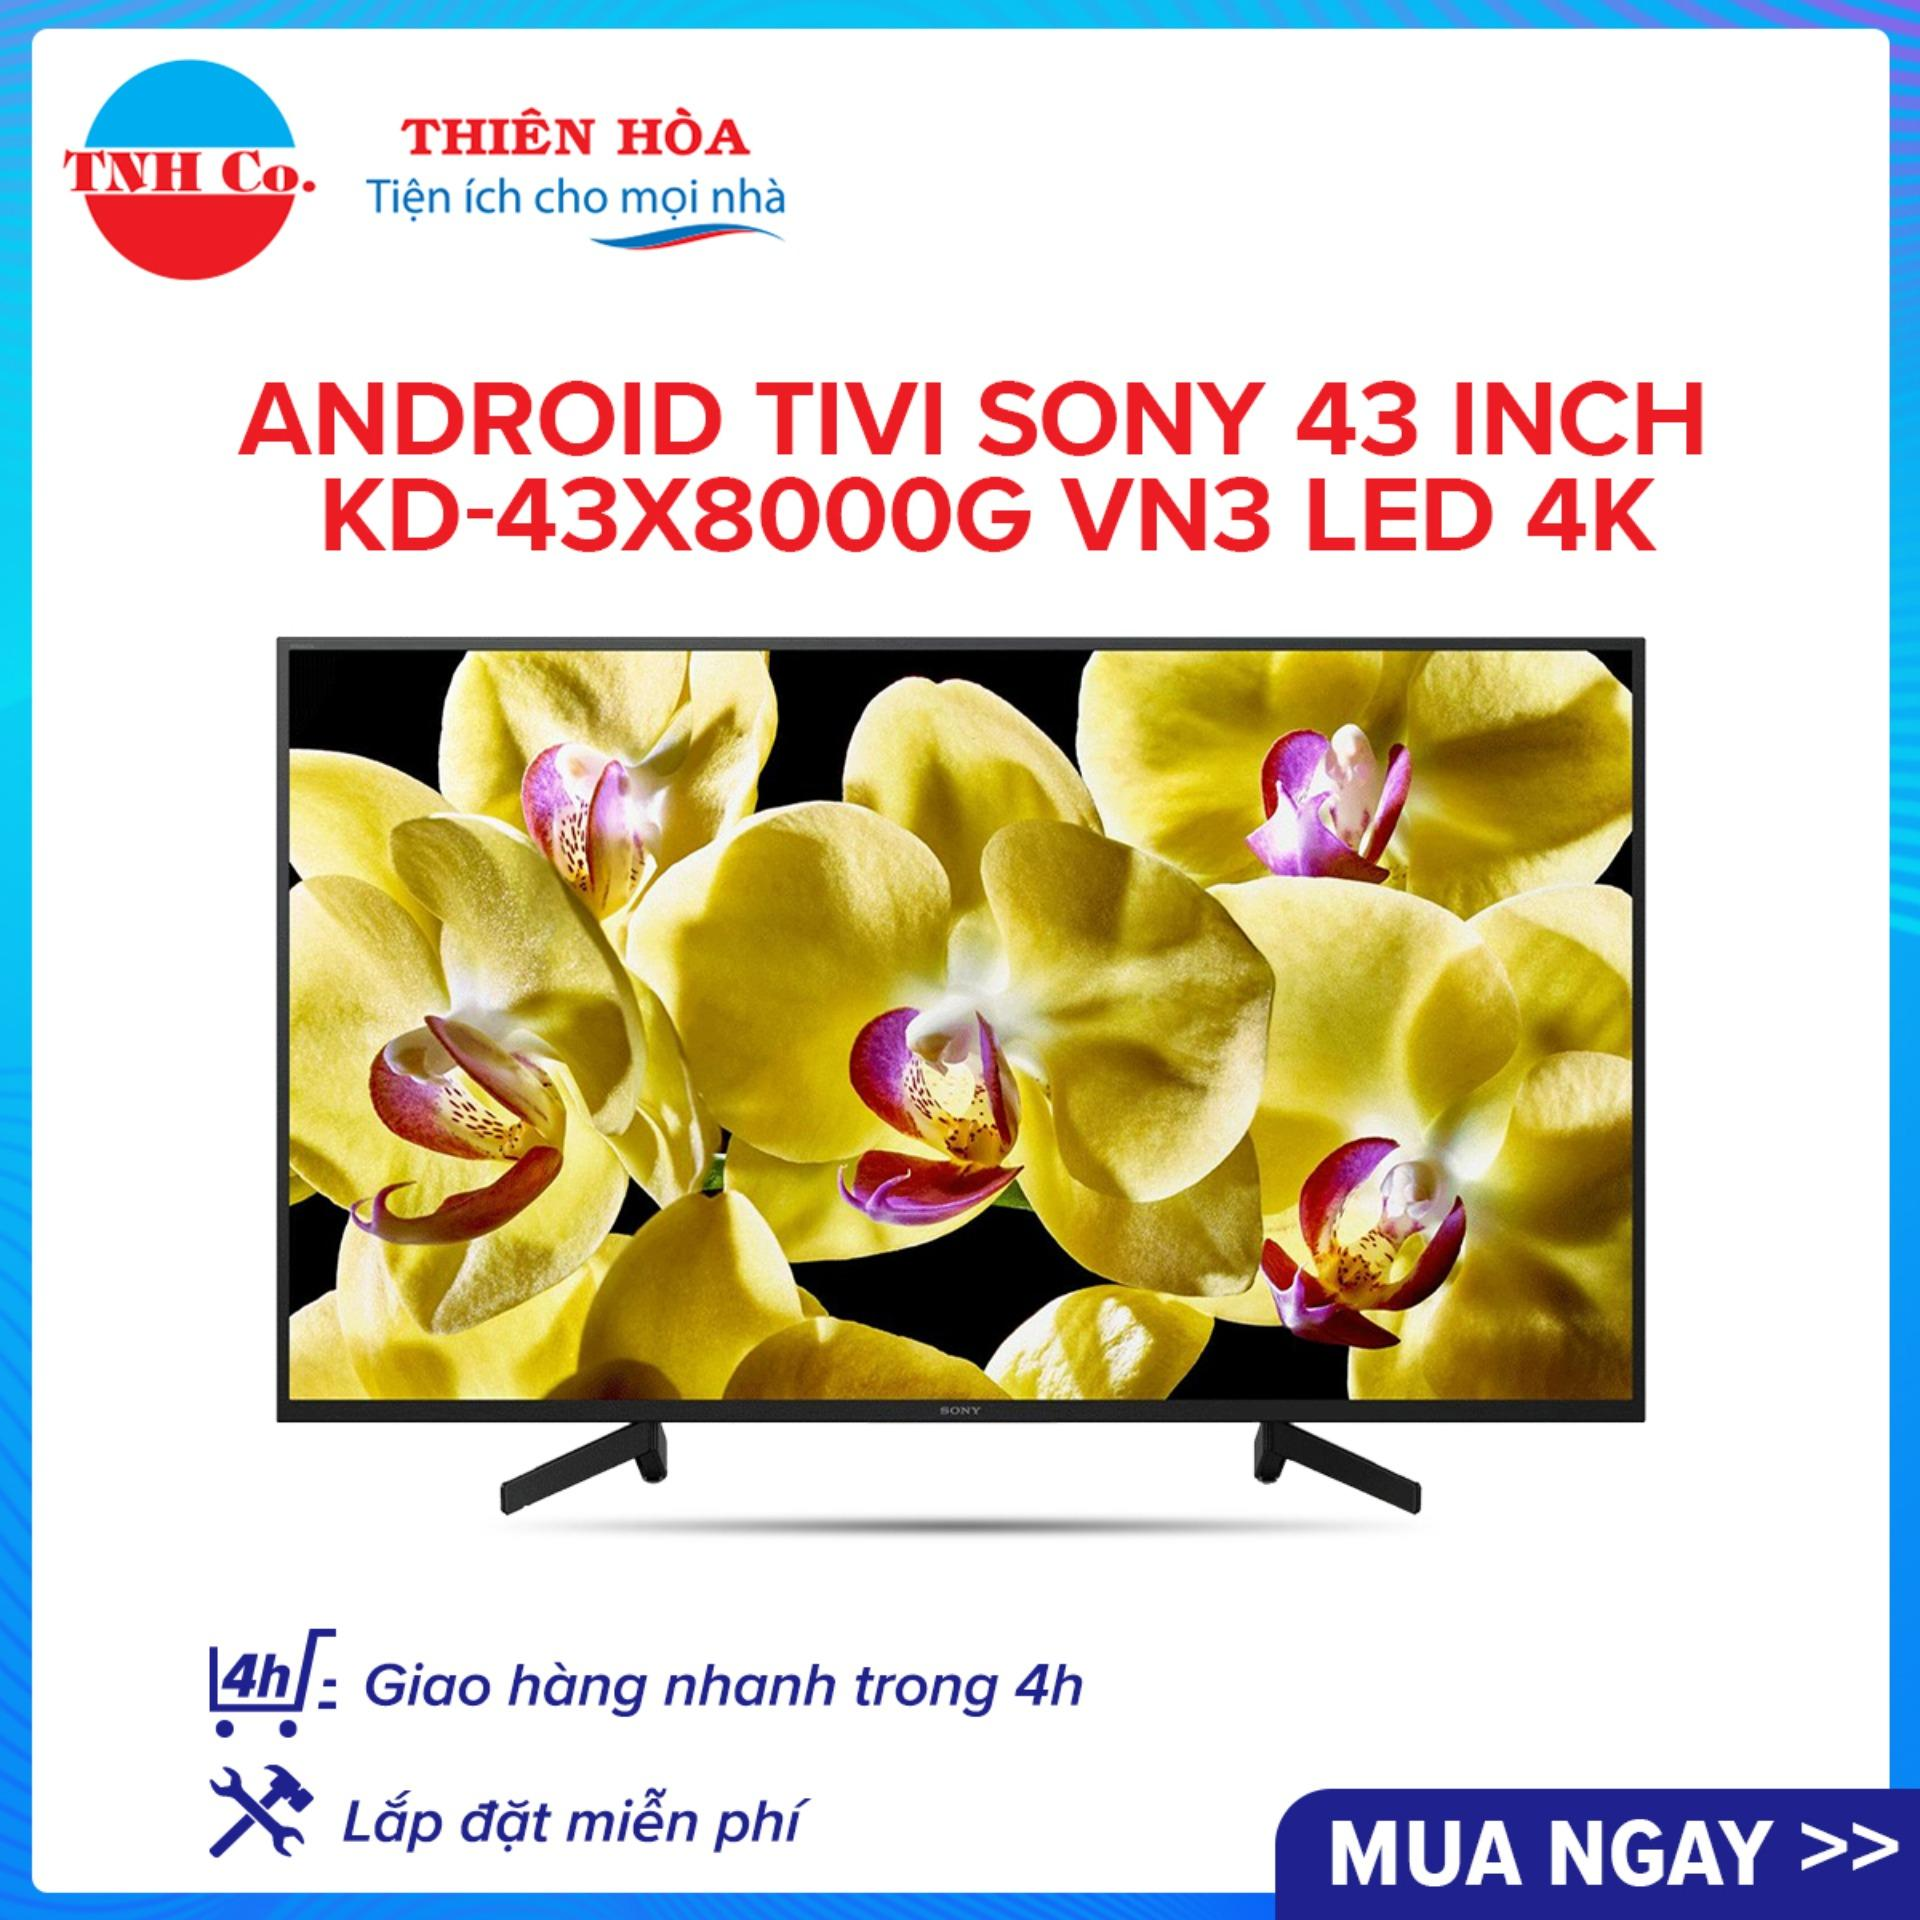 Bảng giá Android Tivi SONY 43 Inch KD-43X8000G VN3 LED 4K